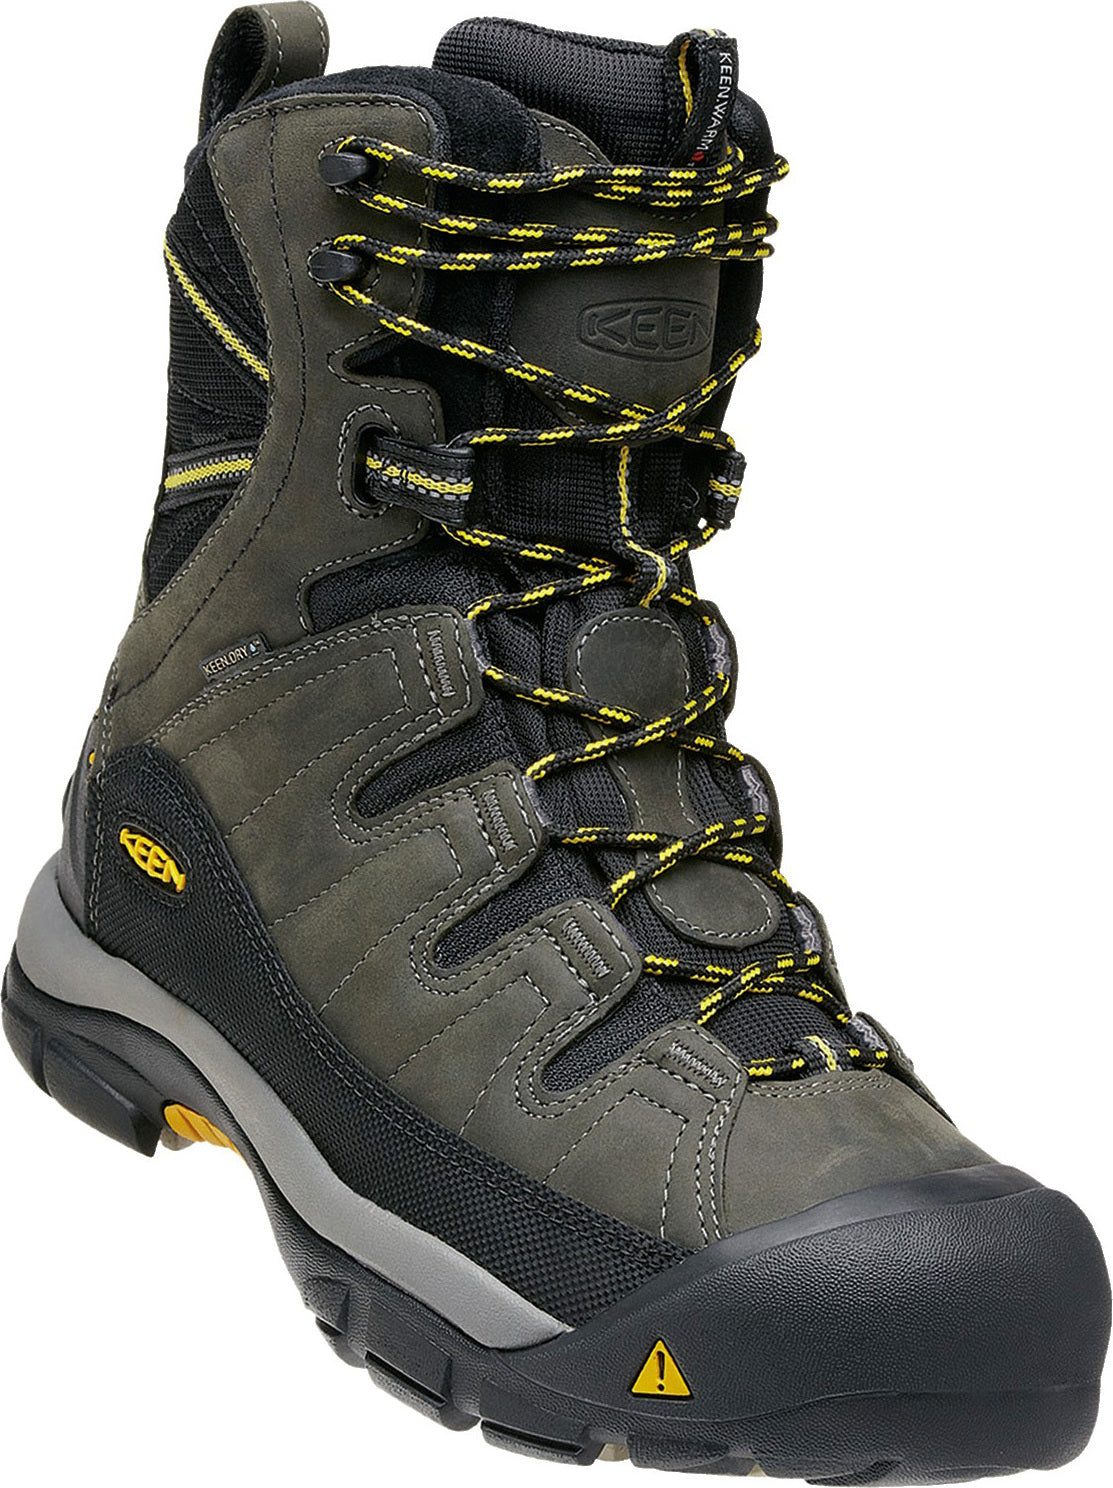 7c8564e1d15 Men's Summit County Insulated Boots